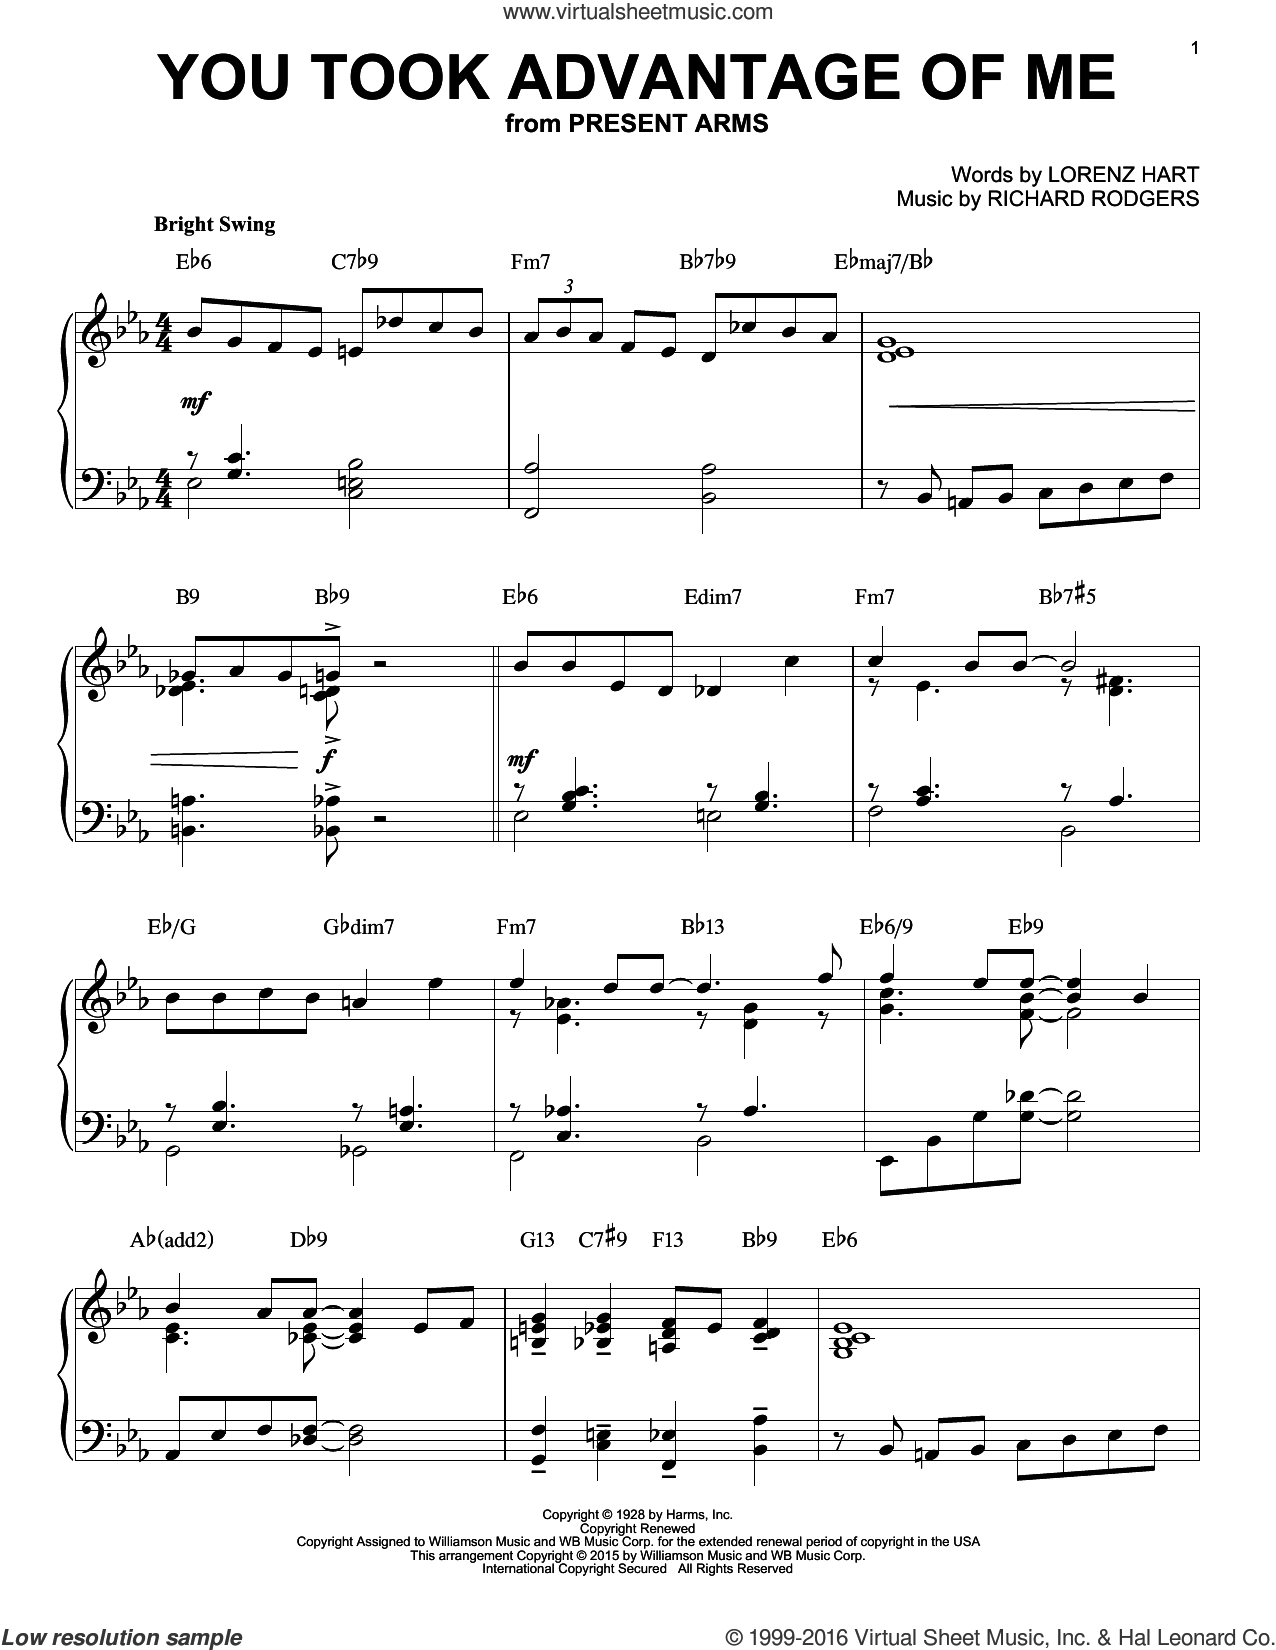 You Took Advantage Of Me sheet music for piano solo by Rodgers & Hart, Lorenz Hart and Richard Rodgers, intermediate skill level